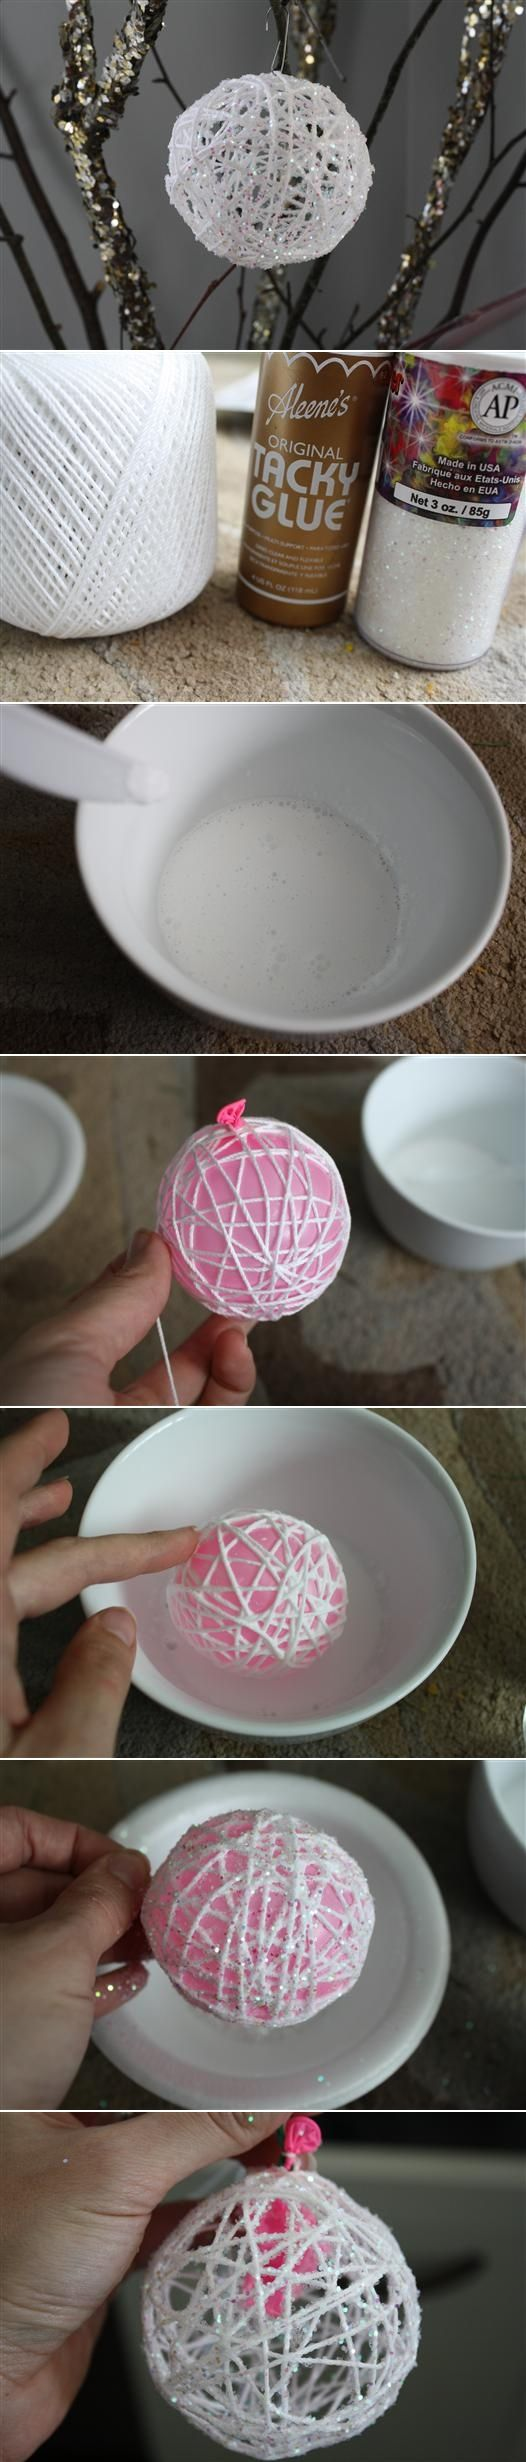 Glittery Snowball Tutorial